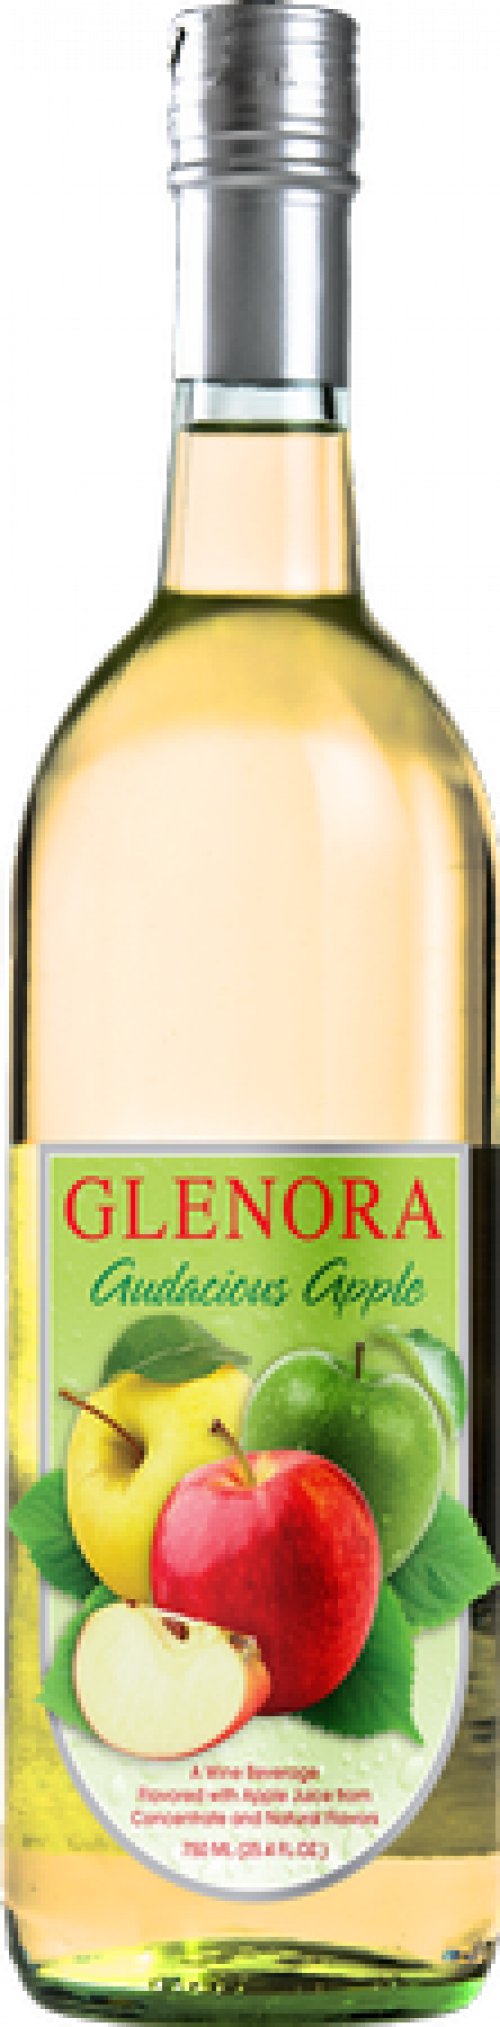 Glenora Audacious Apple 750ml NV